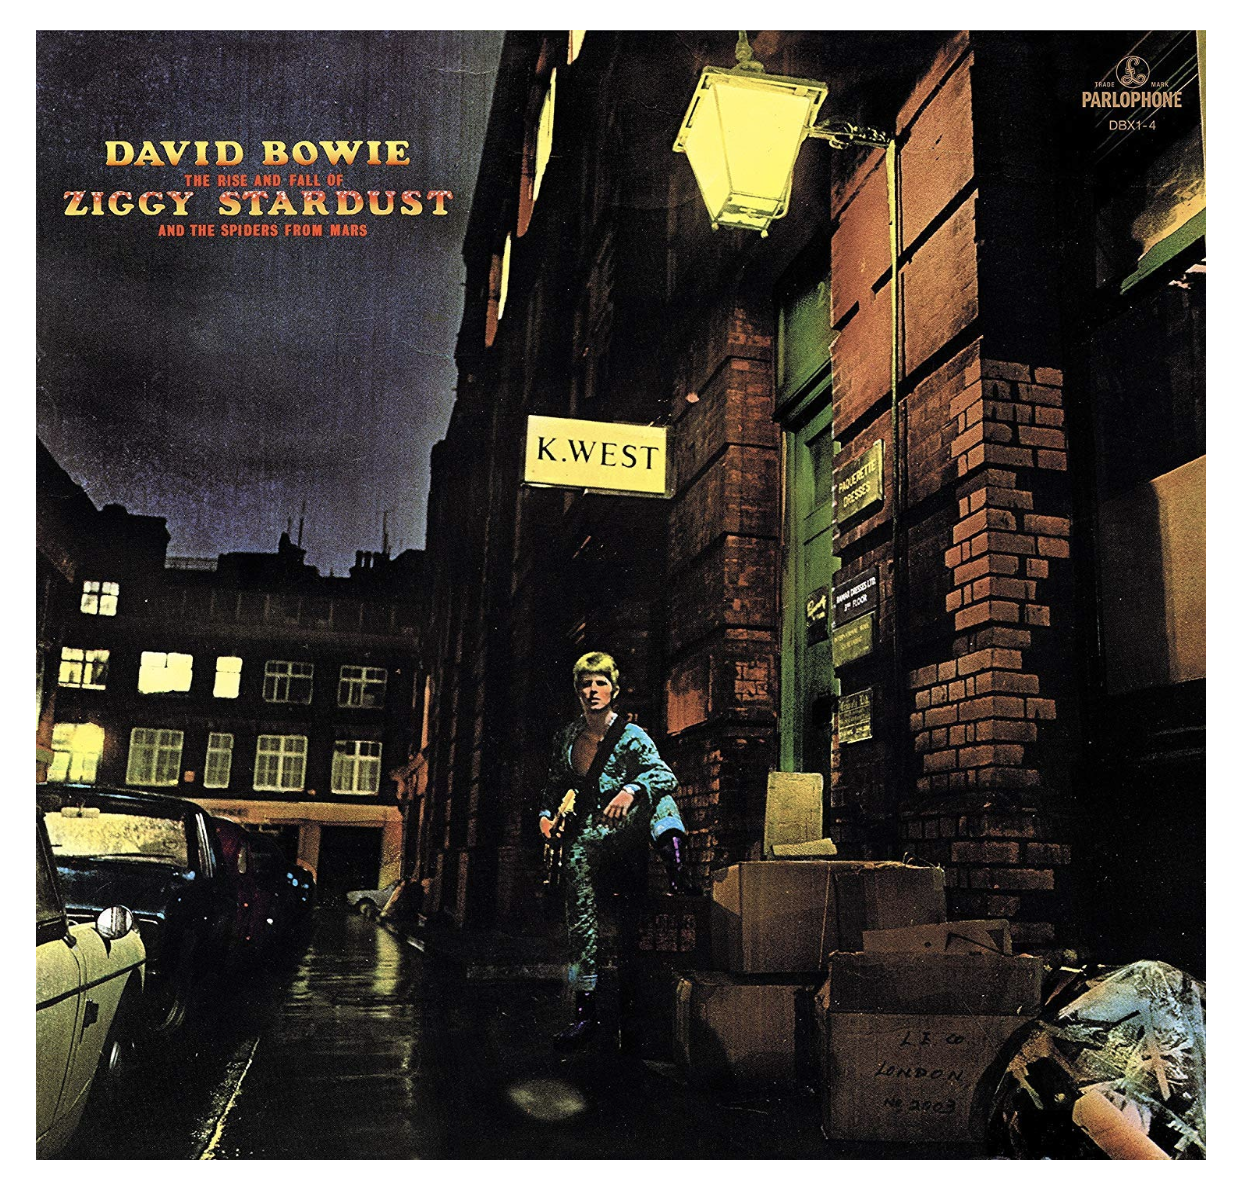 'The Rise and Fall of Ziggy Stardust and the Spiders From Mars' - David Bowie